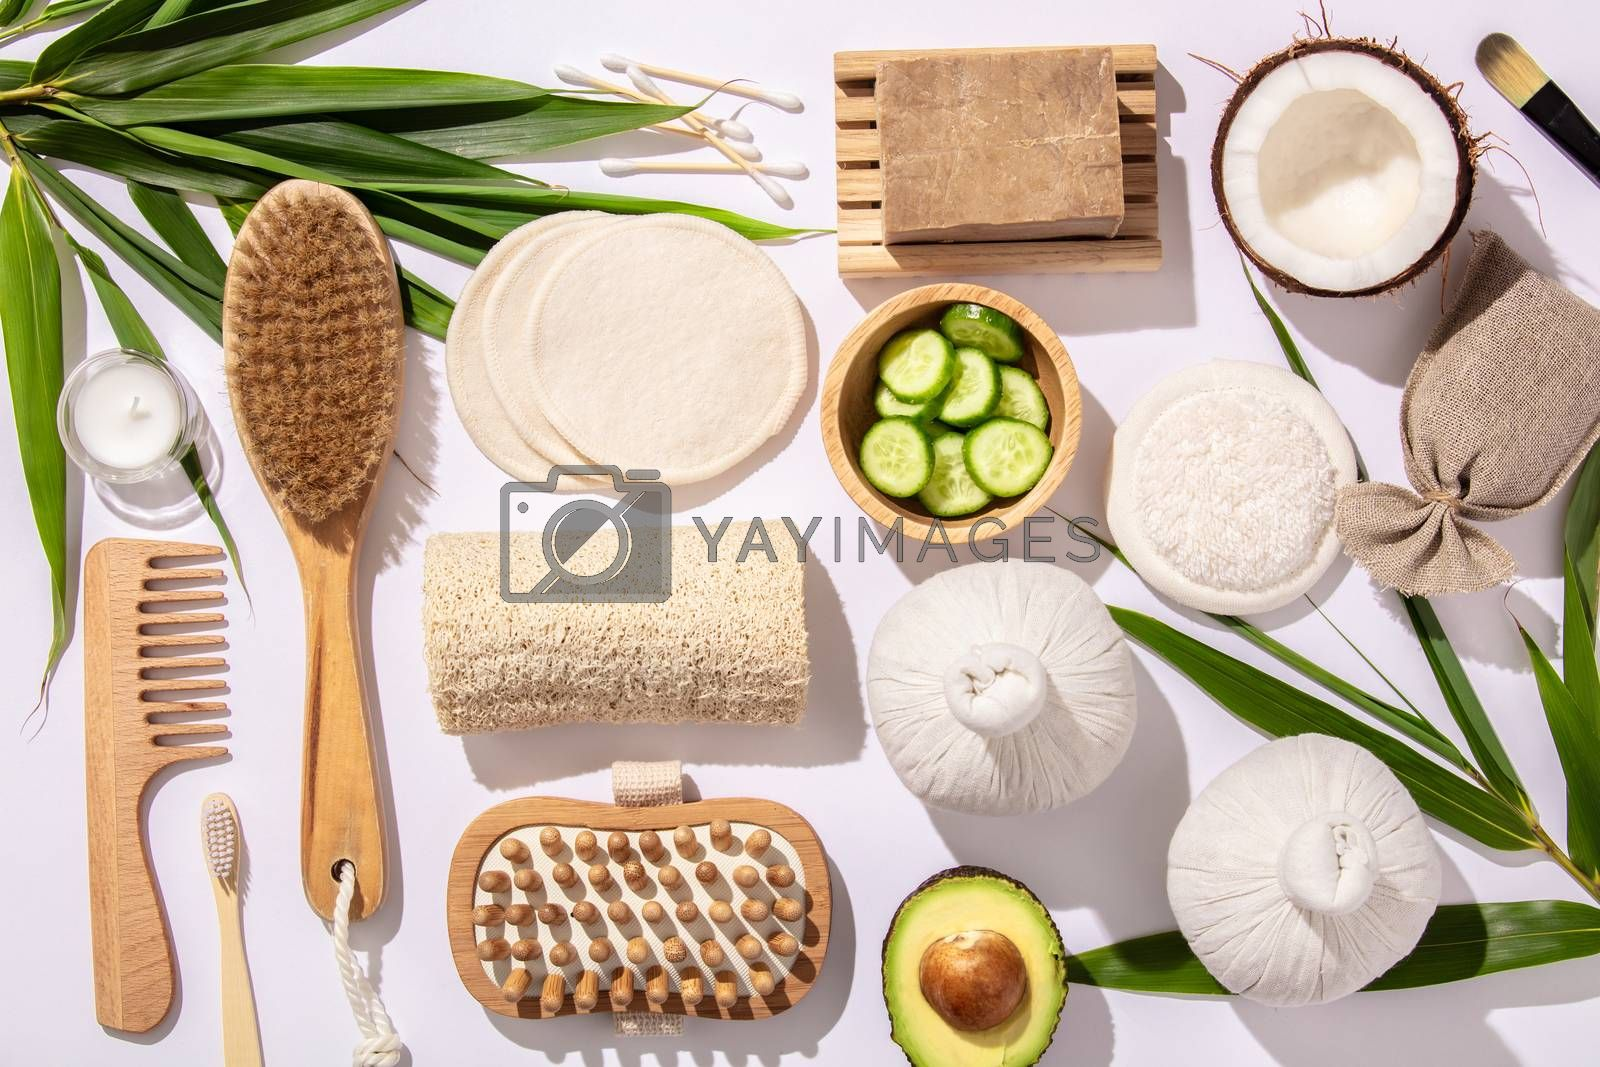 Natural skin care products. Zero waste, eco friendly bathroom and spa accessories on concrete background, flat lay